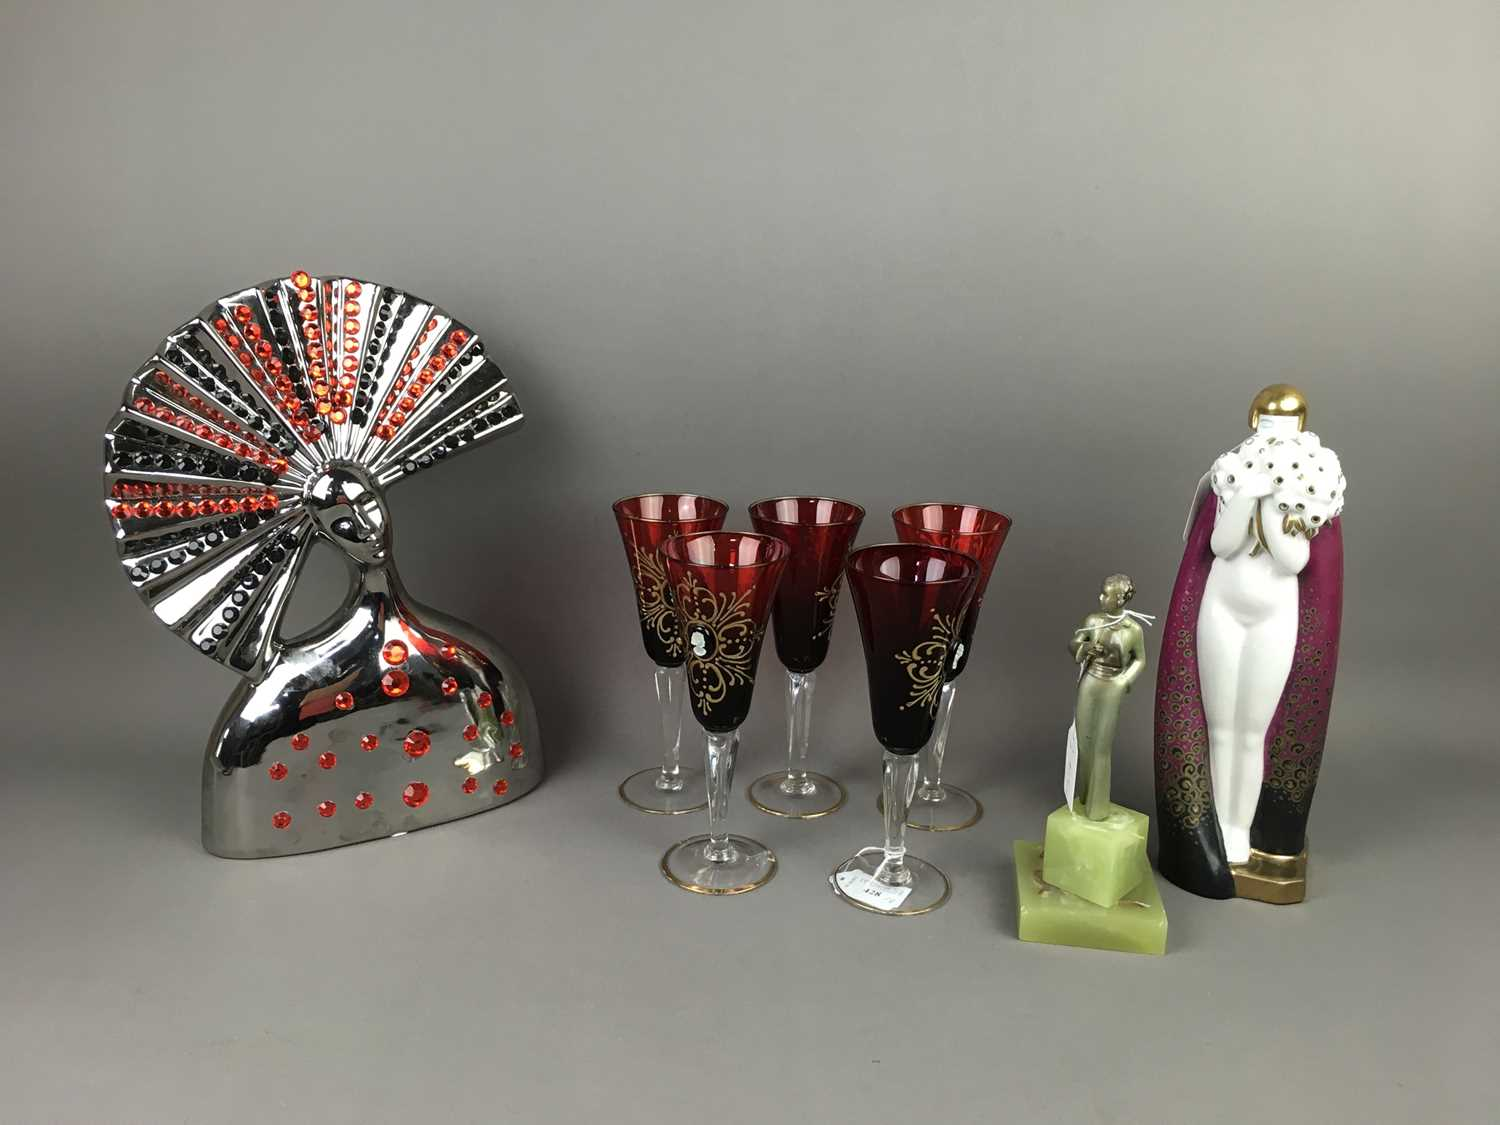 Lot 428 - AN ART DECO PORCELAIN FIGURE OF A FEMALE ALONG WITH OTHER ITEMS